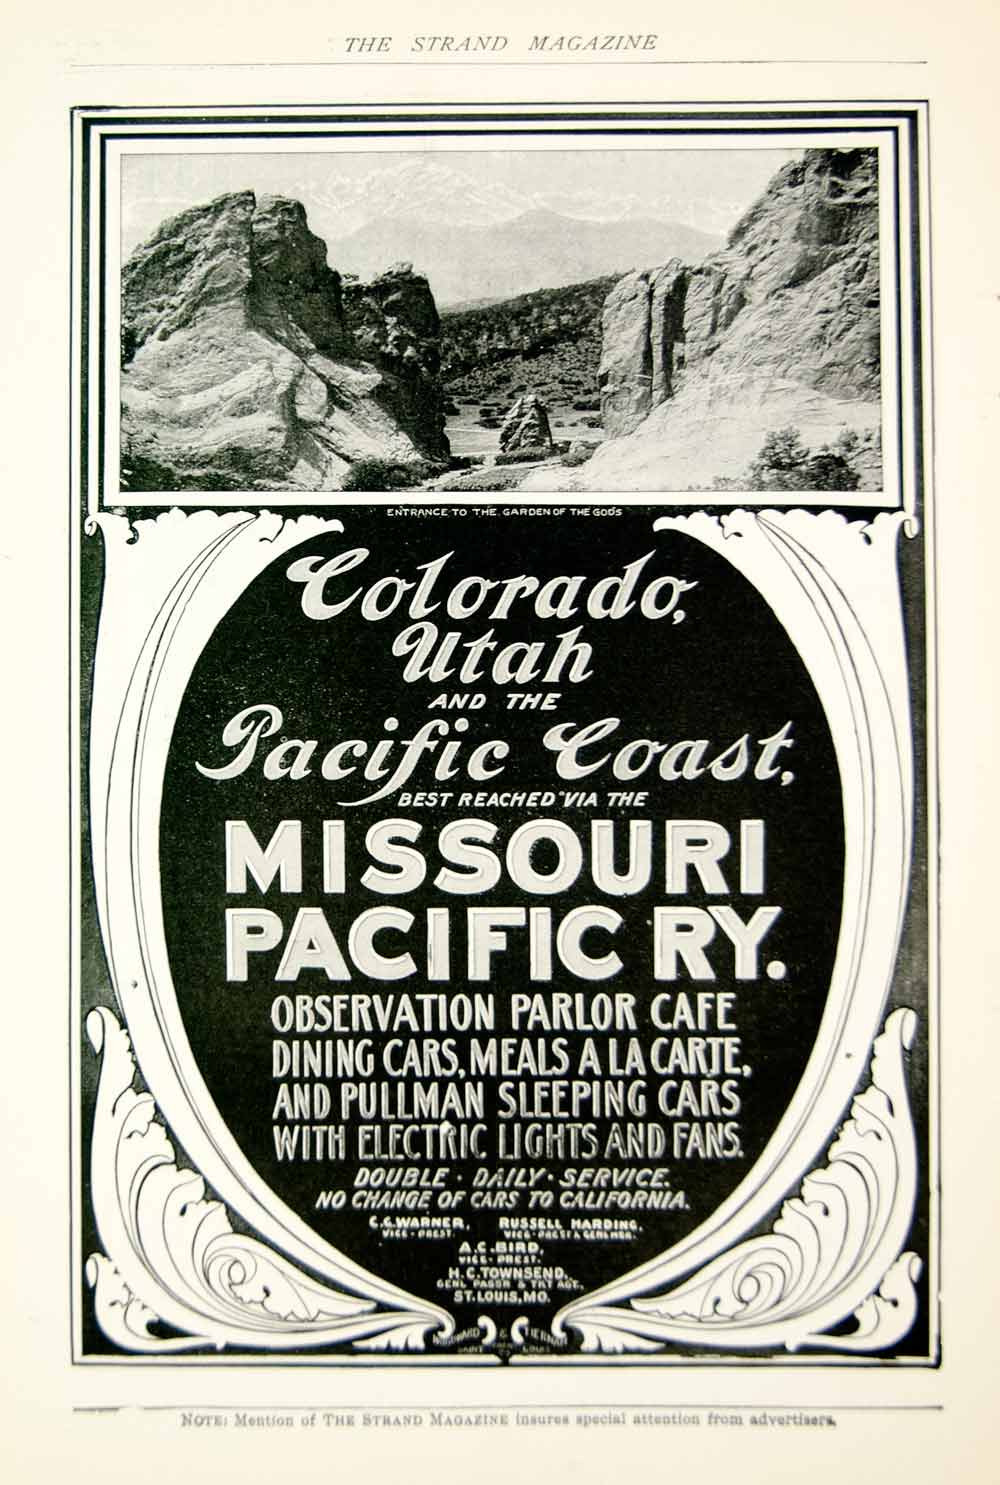 1903 Ad Vintage Missouri Pacific Railway Railroad Travel Garden of the Gods YSM2